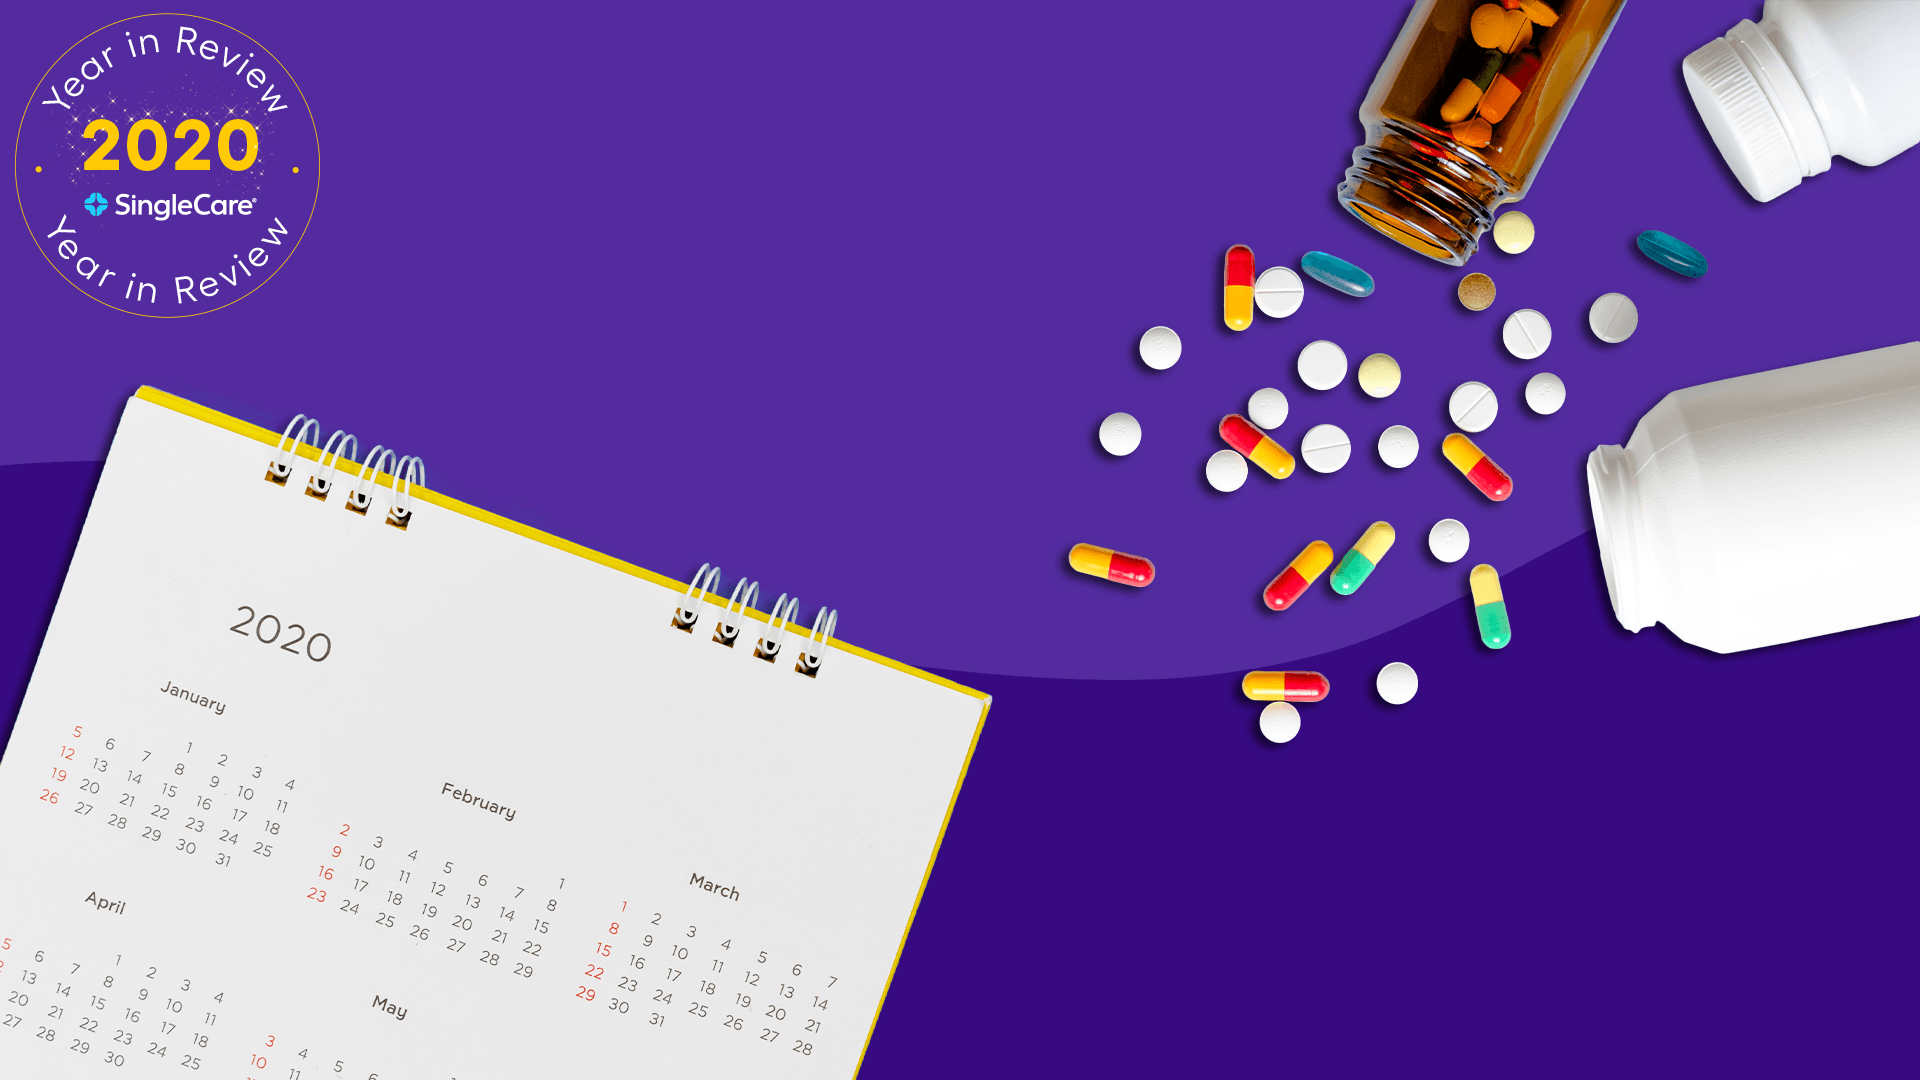 See the 50 most prescribed drugs in 2020